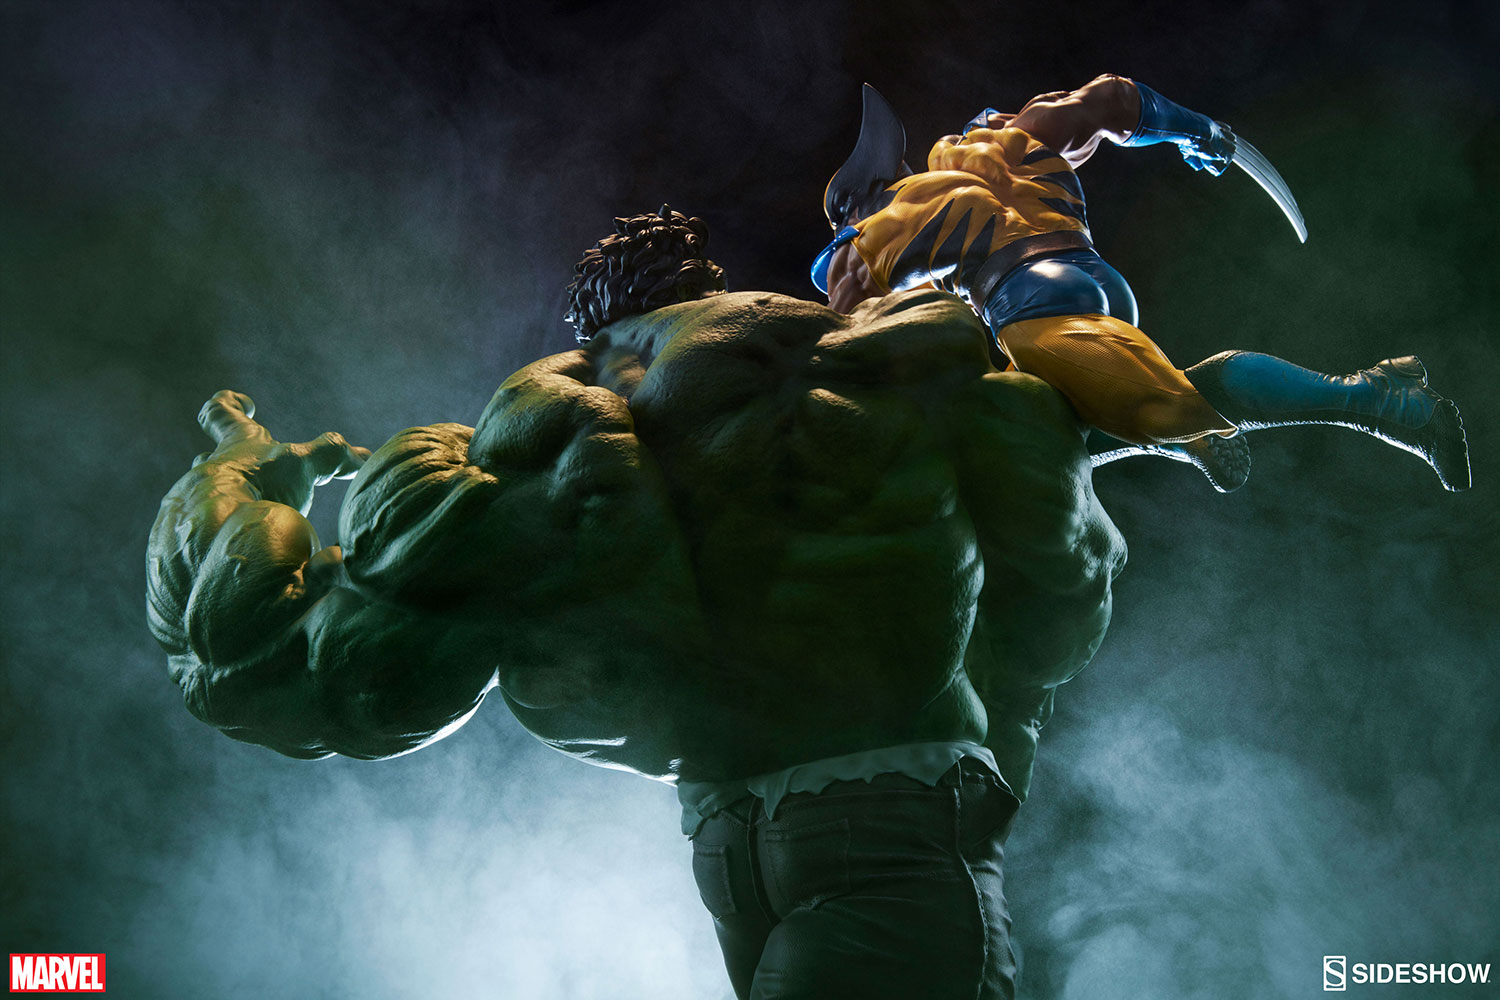 Marvel Hulk and Wolverine Maquette by Sideshow Collectibles     Hulk and Wolverine Maquette Hulk and Wolverine Maquette